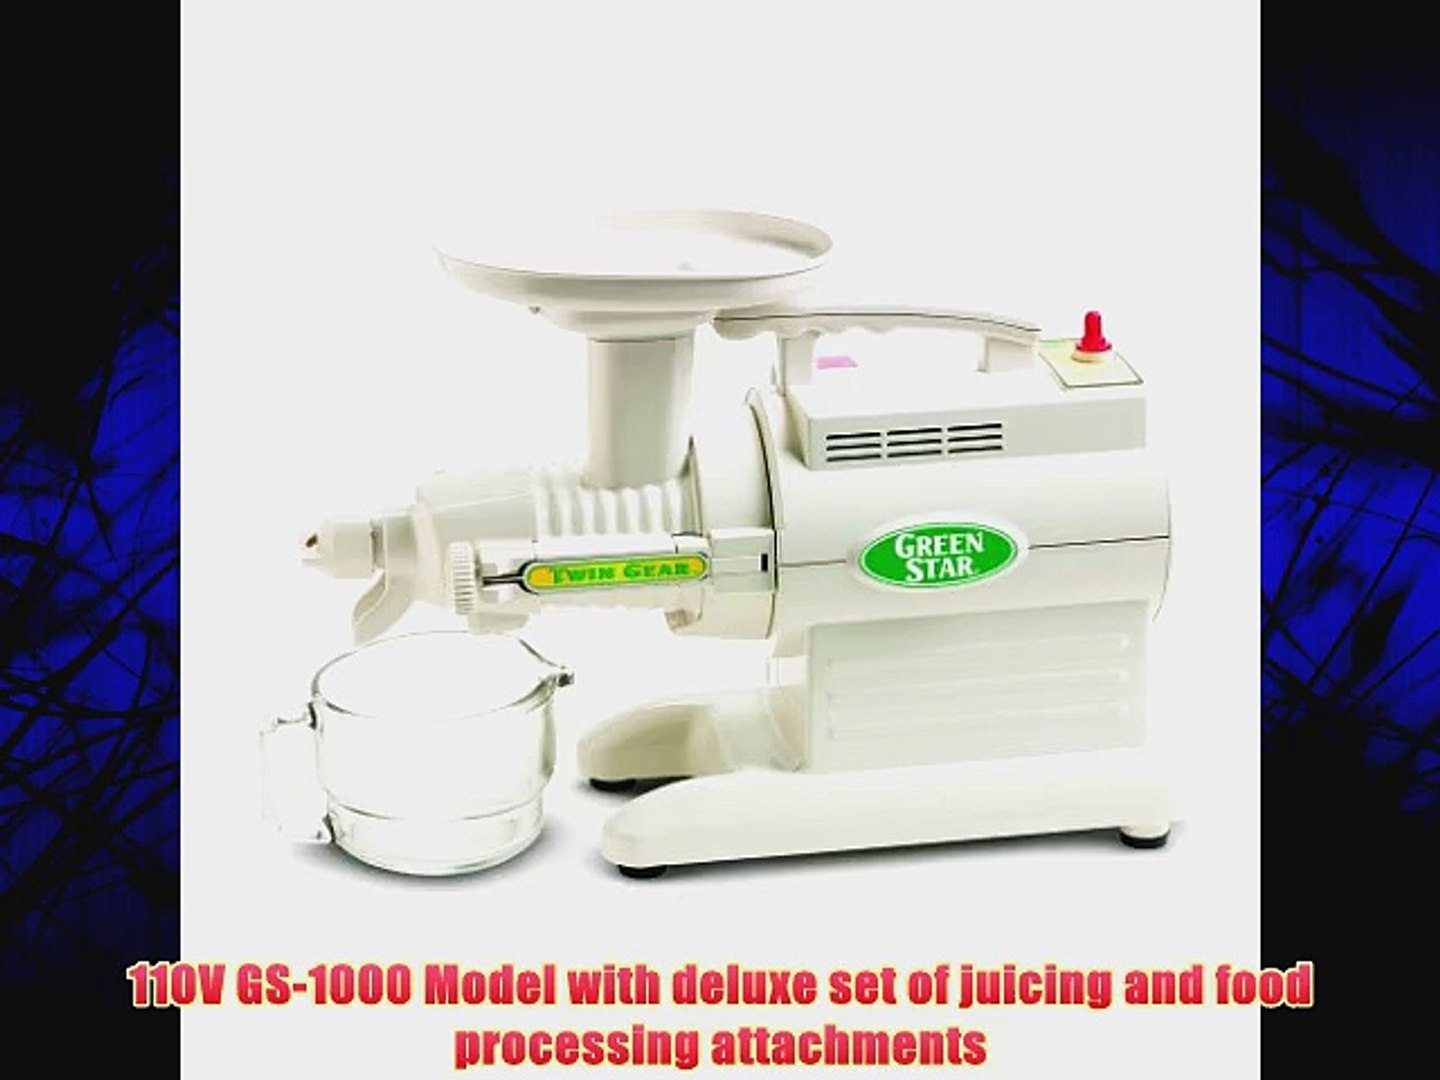 Tribest Green Star GS 3000 Deluxe Twin Gear Juice Extractor